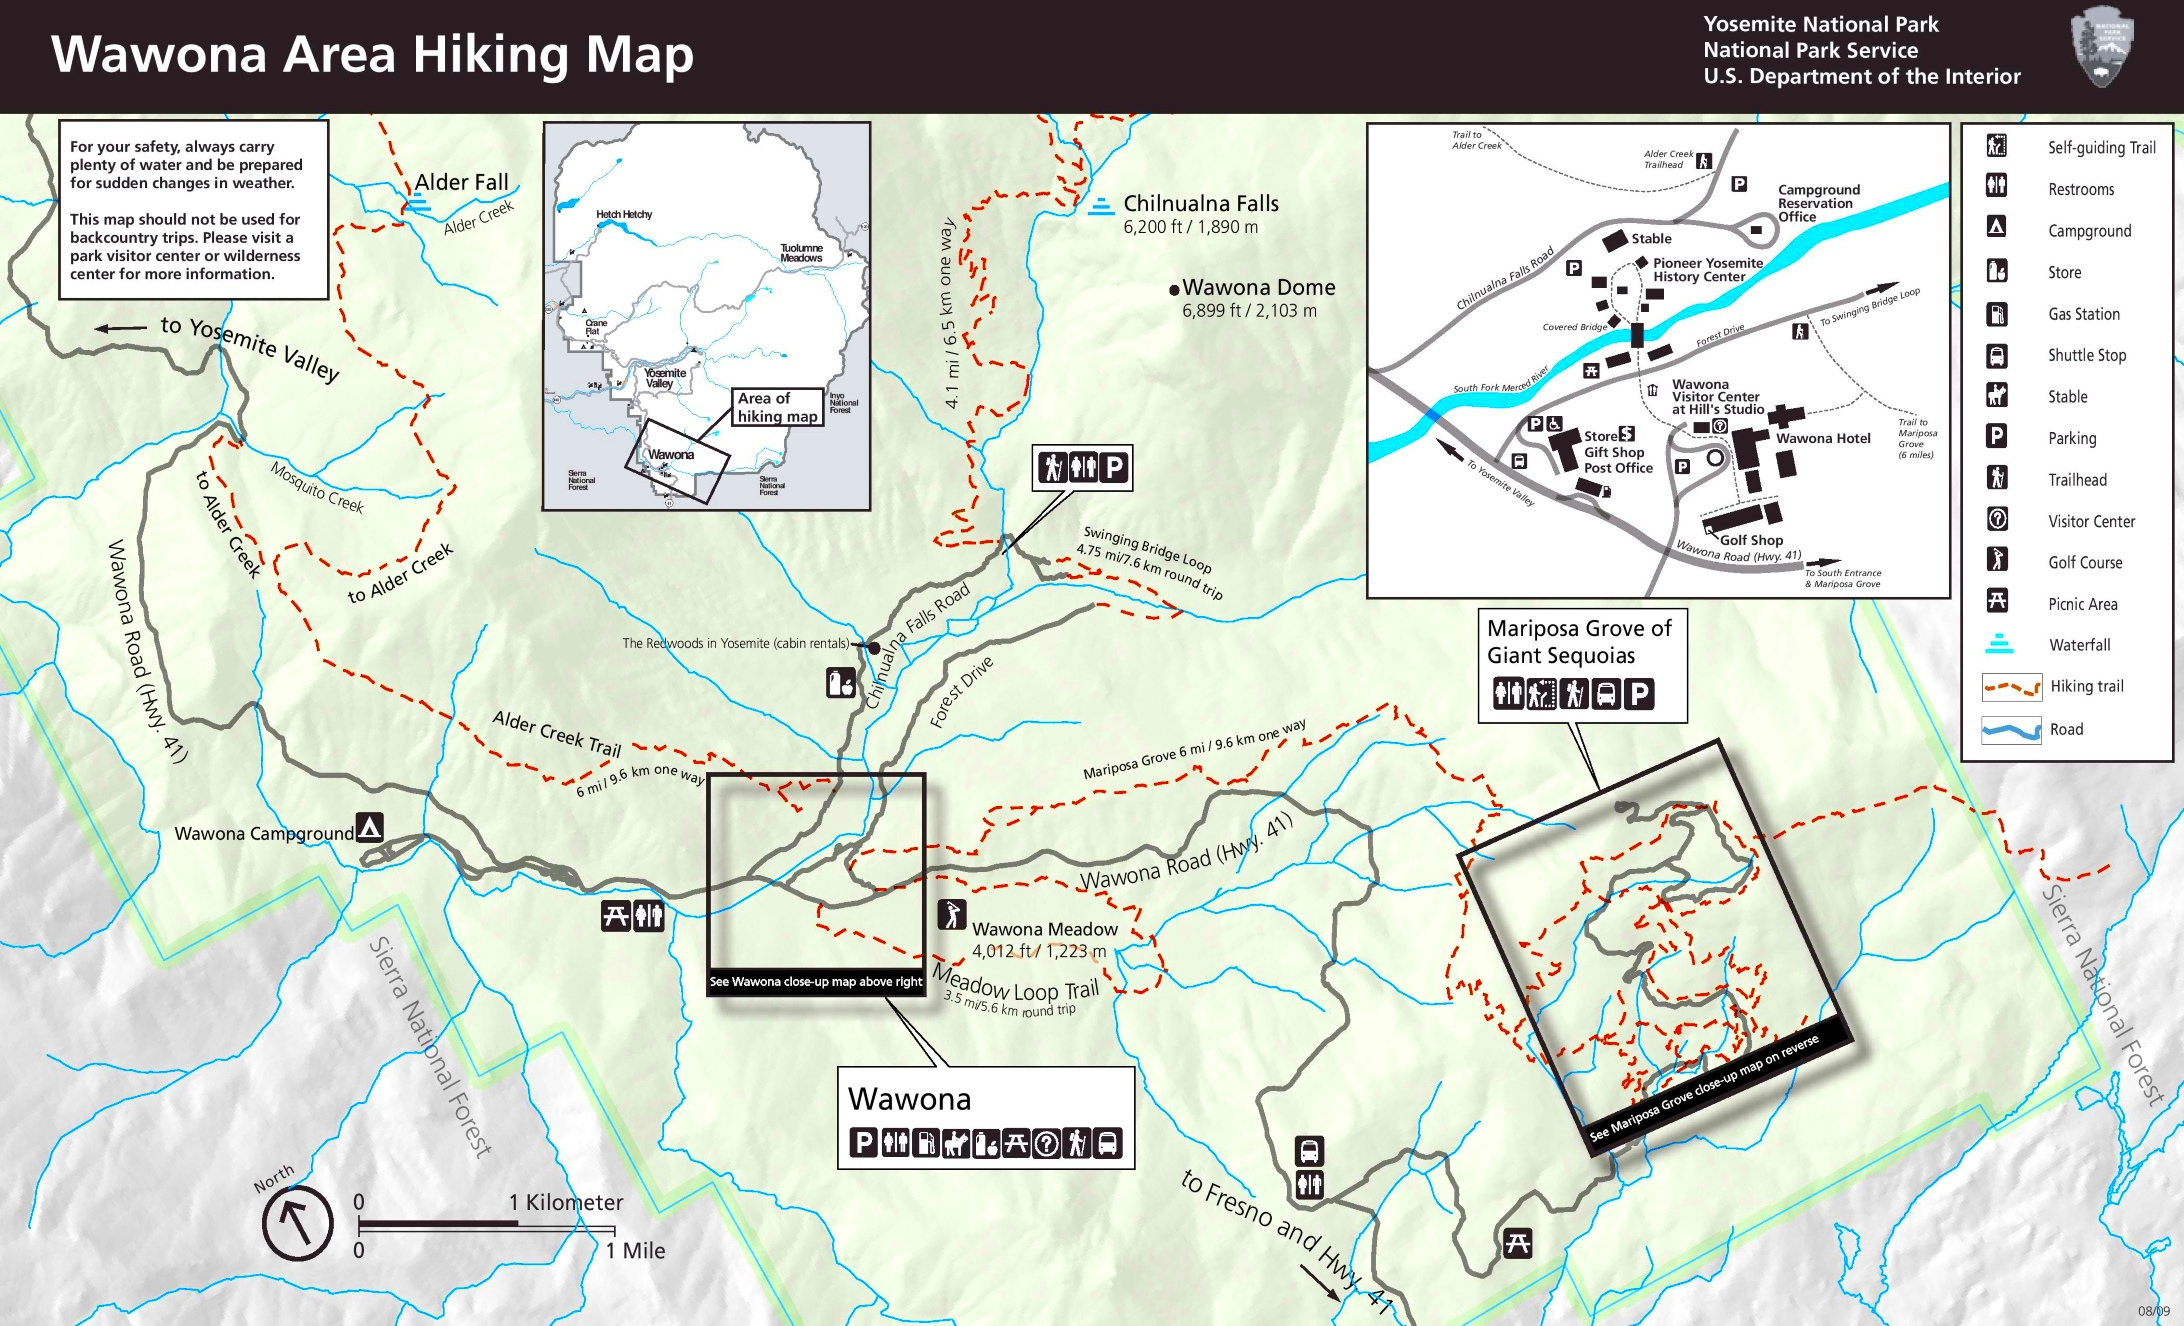 Yosemite Wawona Area hiking map